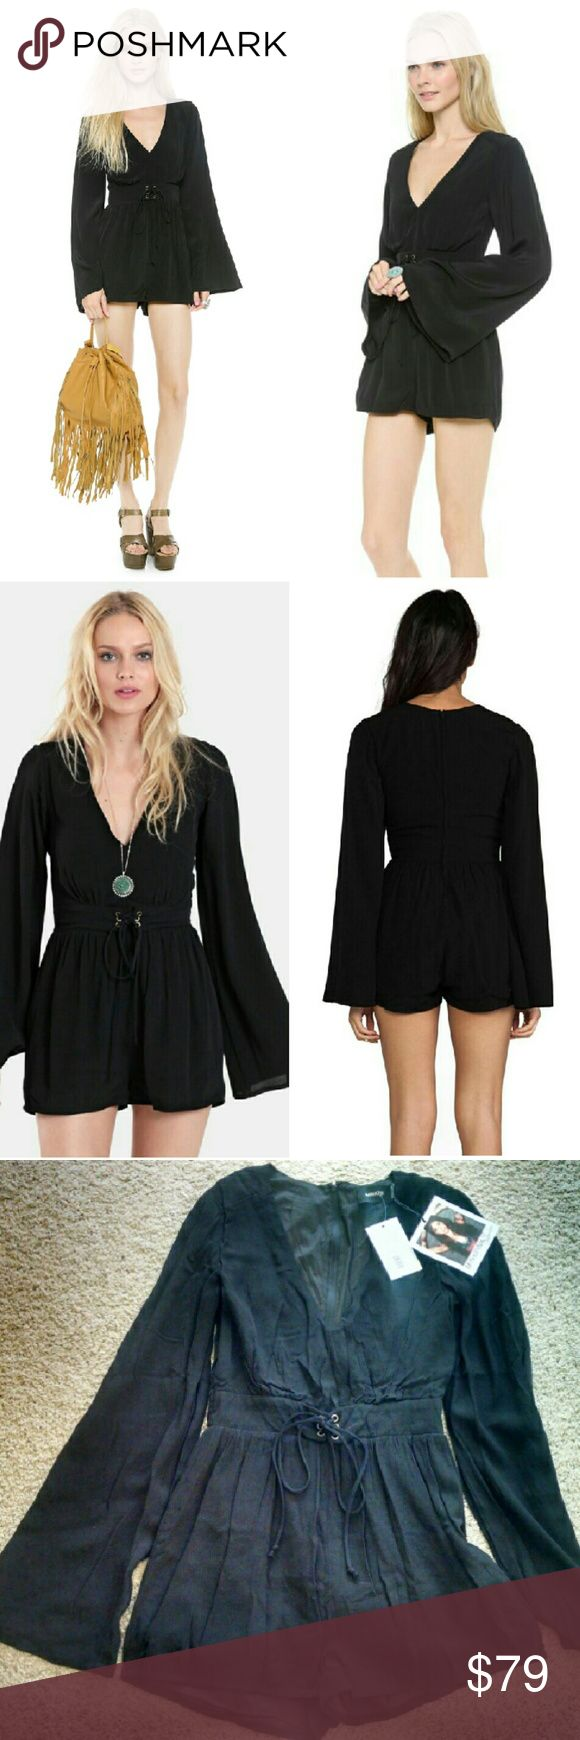 """MinkPink Follow Me to Heaven Playsuit NWT MinkPink Follow Me to Heaven Black Playsuit. Size s Retail $89+tax  Lace up waist detail. great bell sleeves. Back zip.  New w tag, unworn, only tried on. A bit wrinkled, Could use steam/iron & I'm without my steamer. 2"""" inseam. Lined. Hippie boho festival witchy woman cuteness. Last pic 5'8"""" size 4. Tags romper, nasty gal, urban outfitters MINKPINK Pants Jumpsuits & Rompers"""